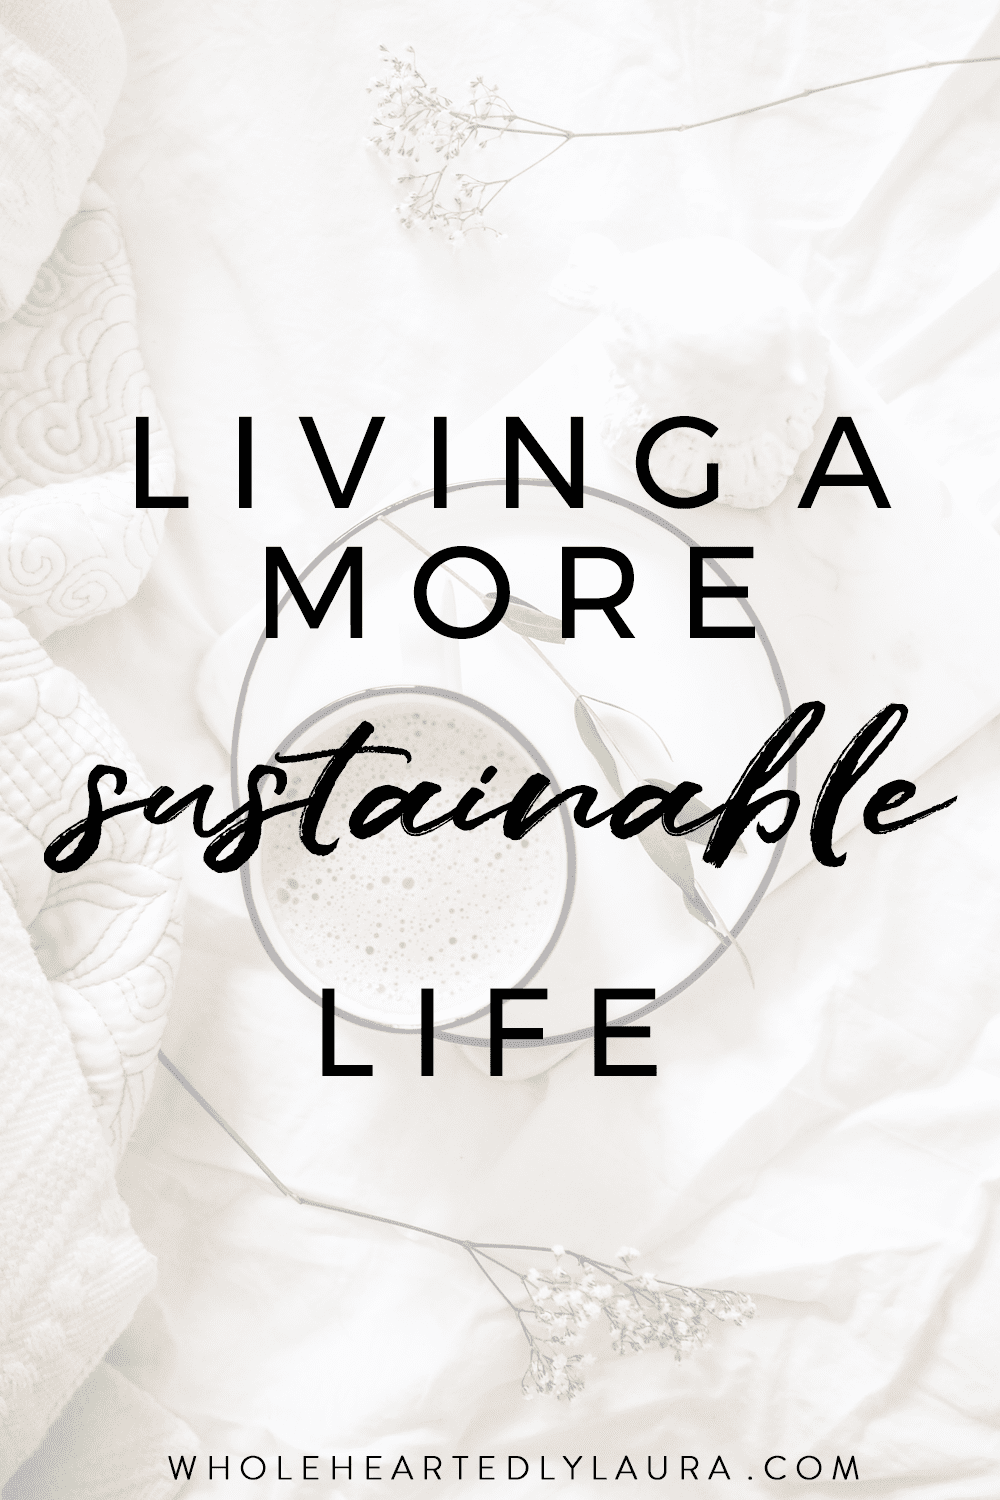 Living a more sustainable life: how I've changed my life to make it slower, calmer and more sustainable